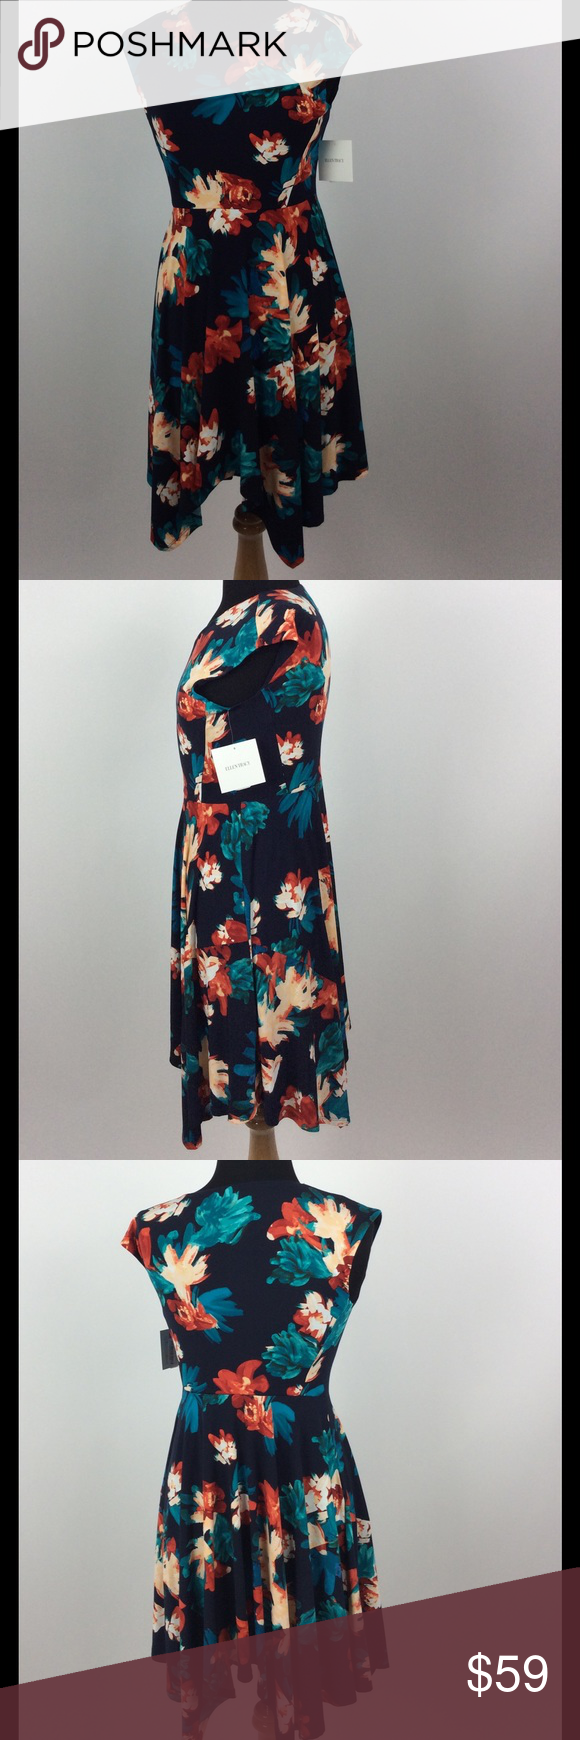 Ellen tracy nwt see size chart for more measurements sku   also customer support and delivery rh pinterest